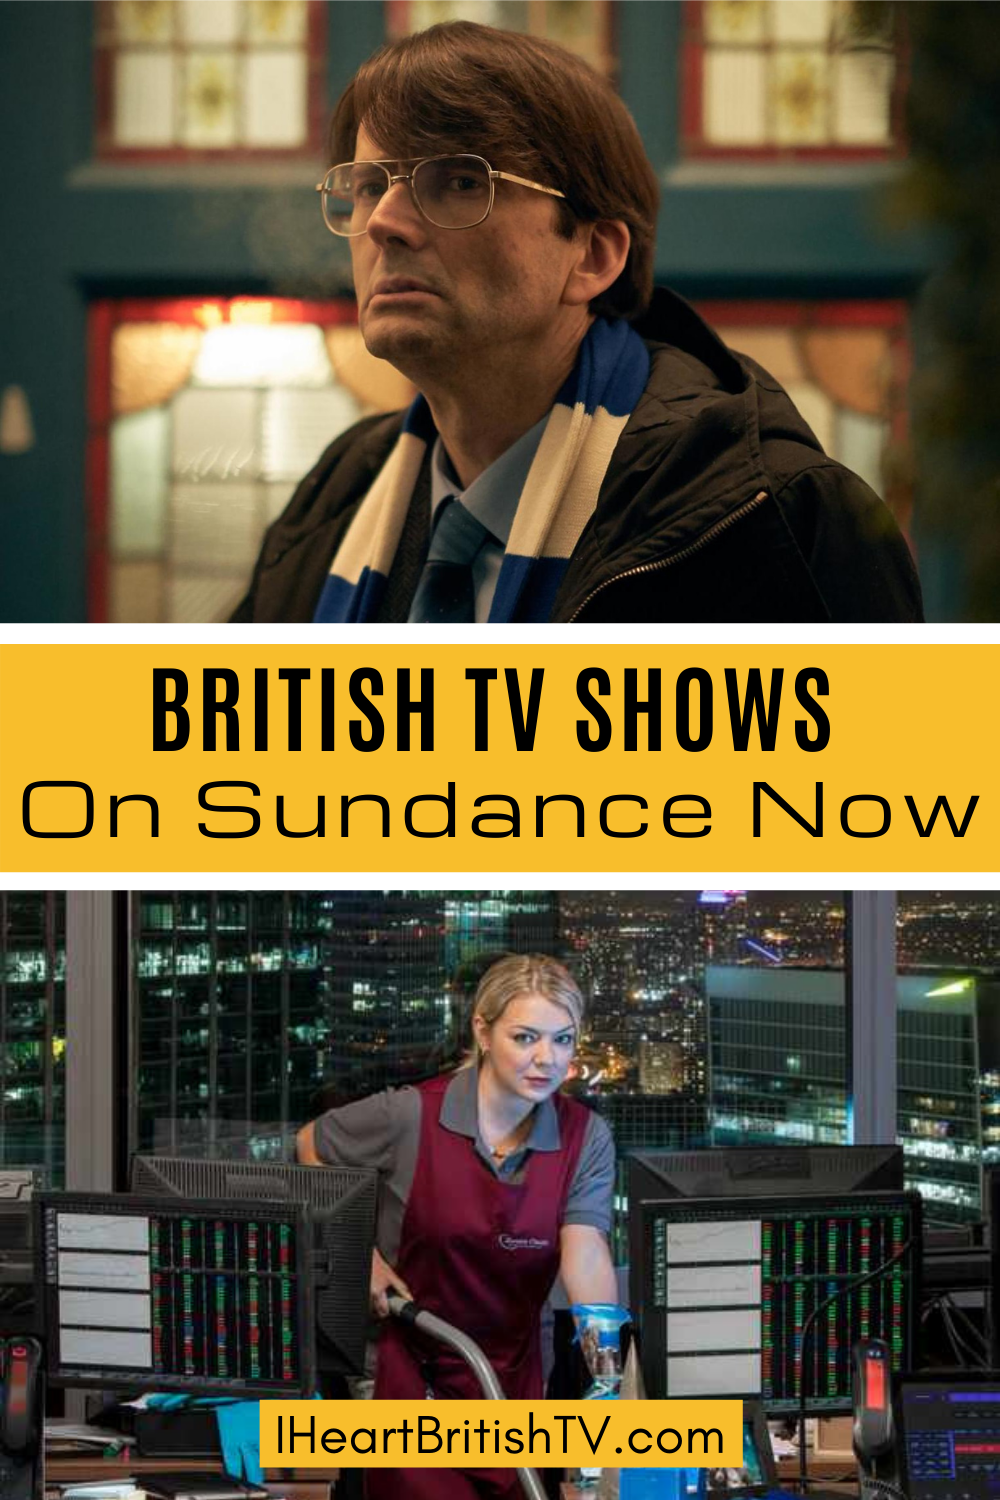 British TV Shows on Sundance Now by the Sundance Channel 22